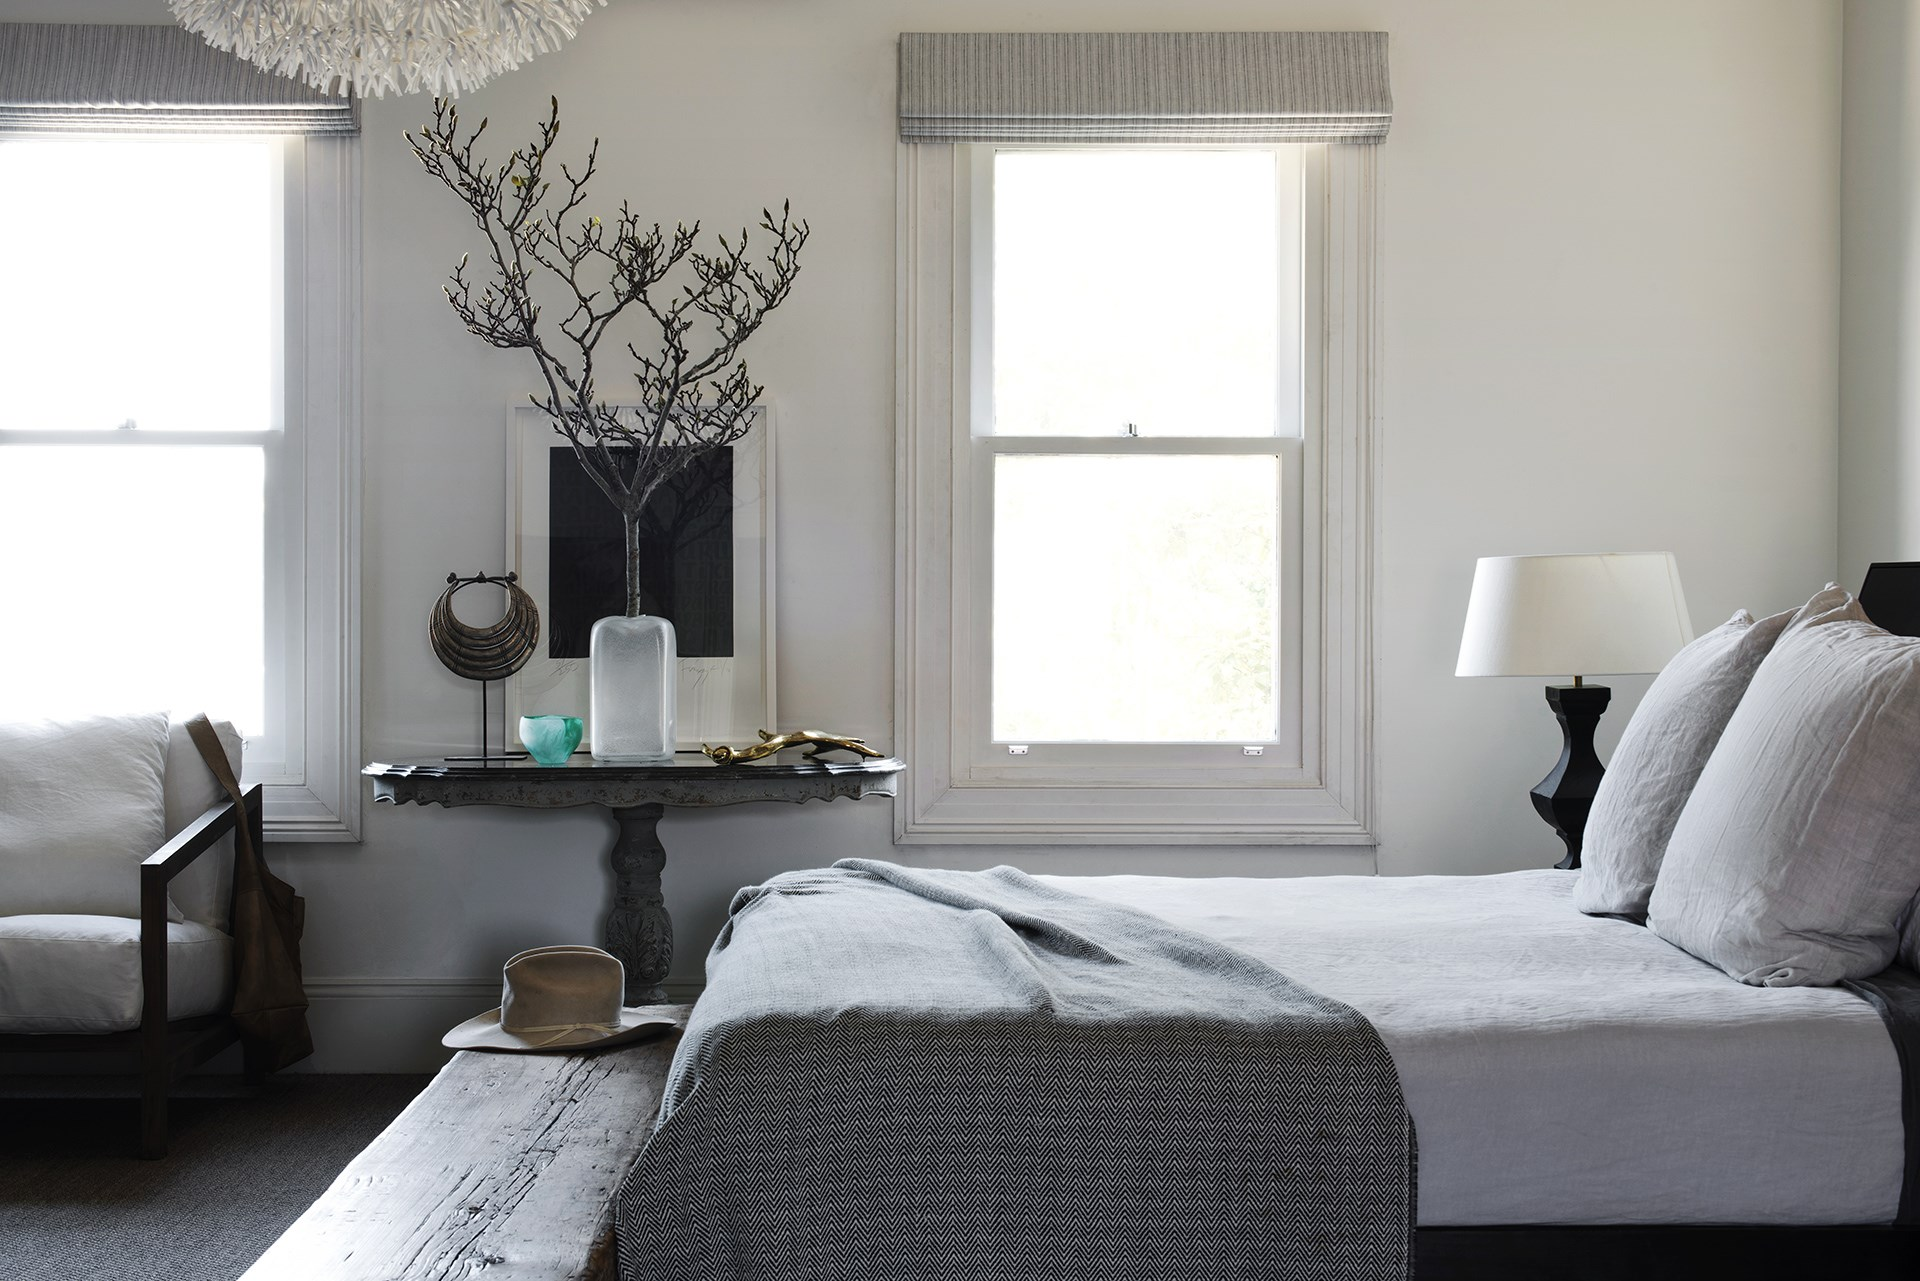 A reference to nature, such as a sculptural tree branch, is a good choice for the moody master bedroom within this [heritage-listed Paddington terrace](http://www.homestolove.com.au/pennys-paddington-terrace-renovation-2462). *Photo: Nicholas Watt*